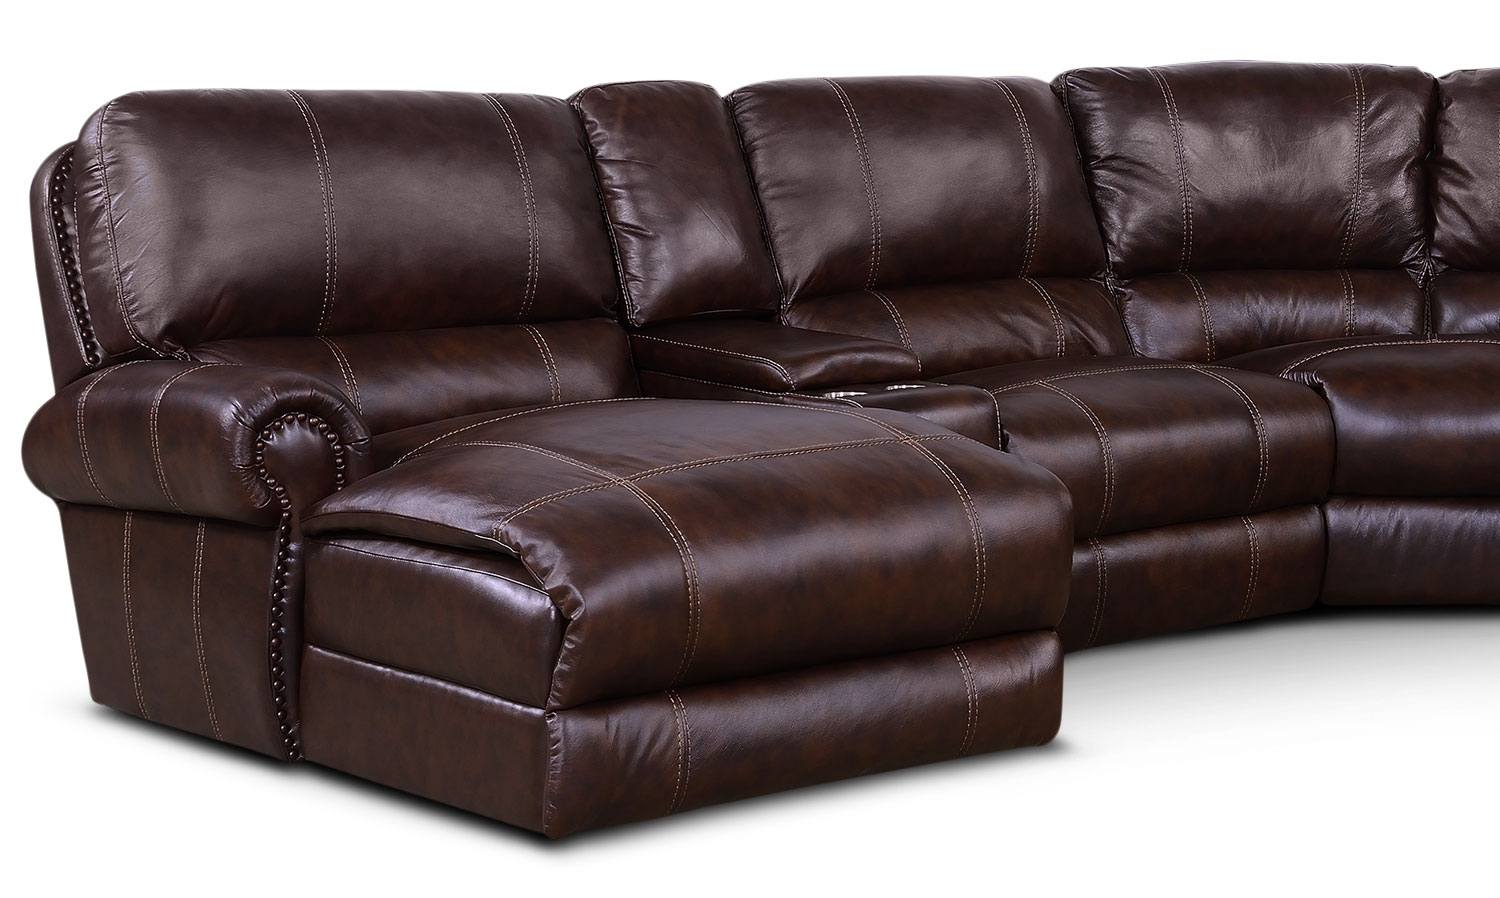 Dartmouth 6 Piece Power Reclining Sectional W/ Left Facing Chaise For Norfolk Chocolate 6 Piece Sectionals (View 4 of 25)